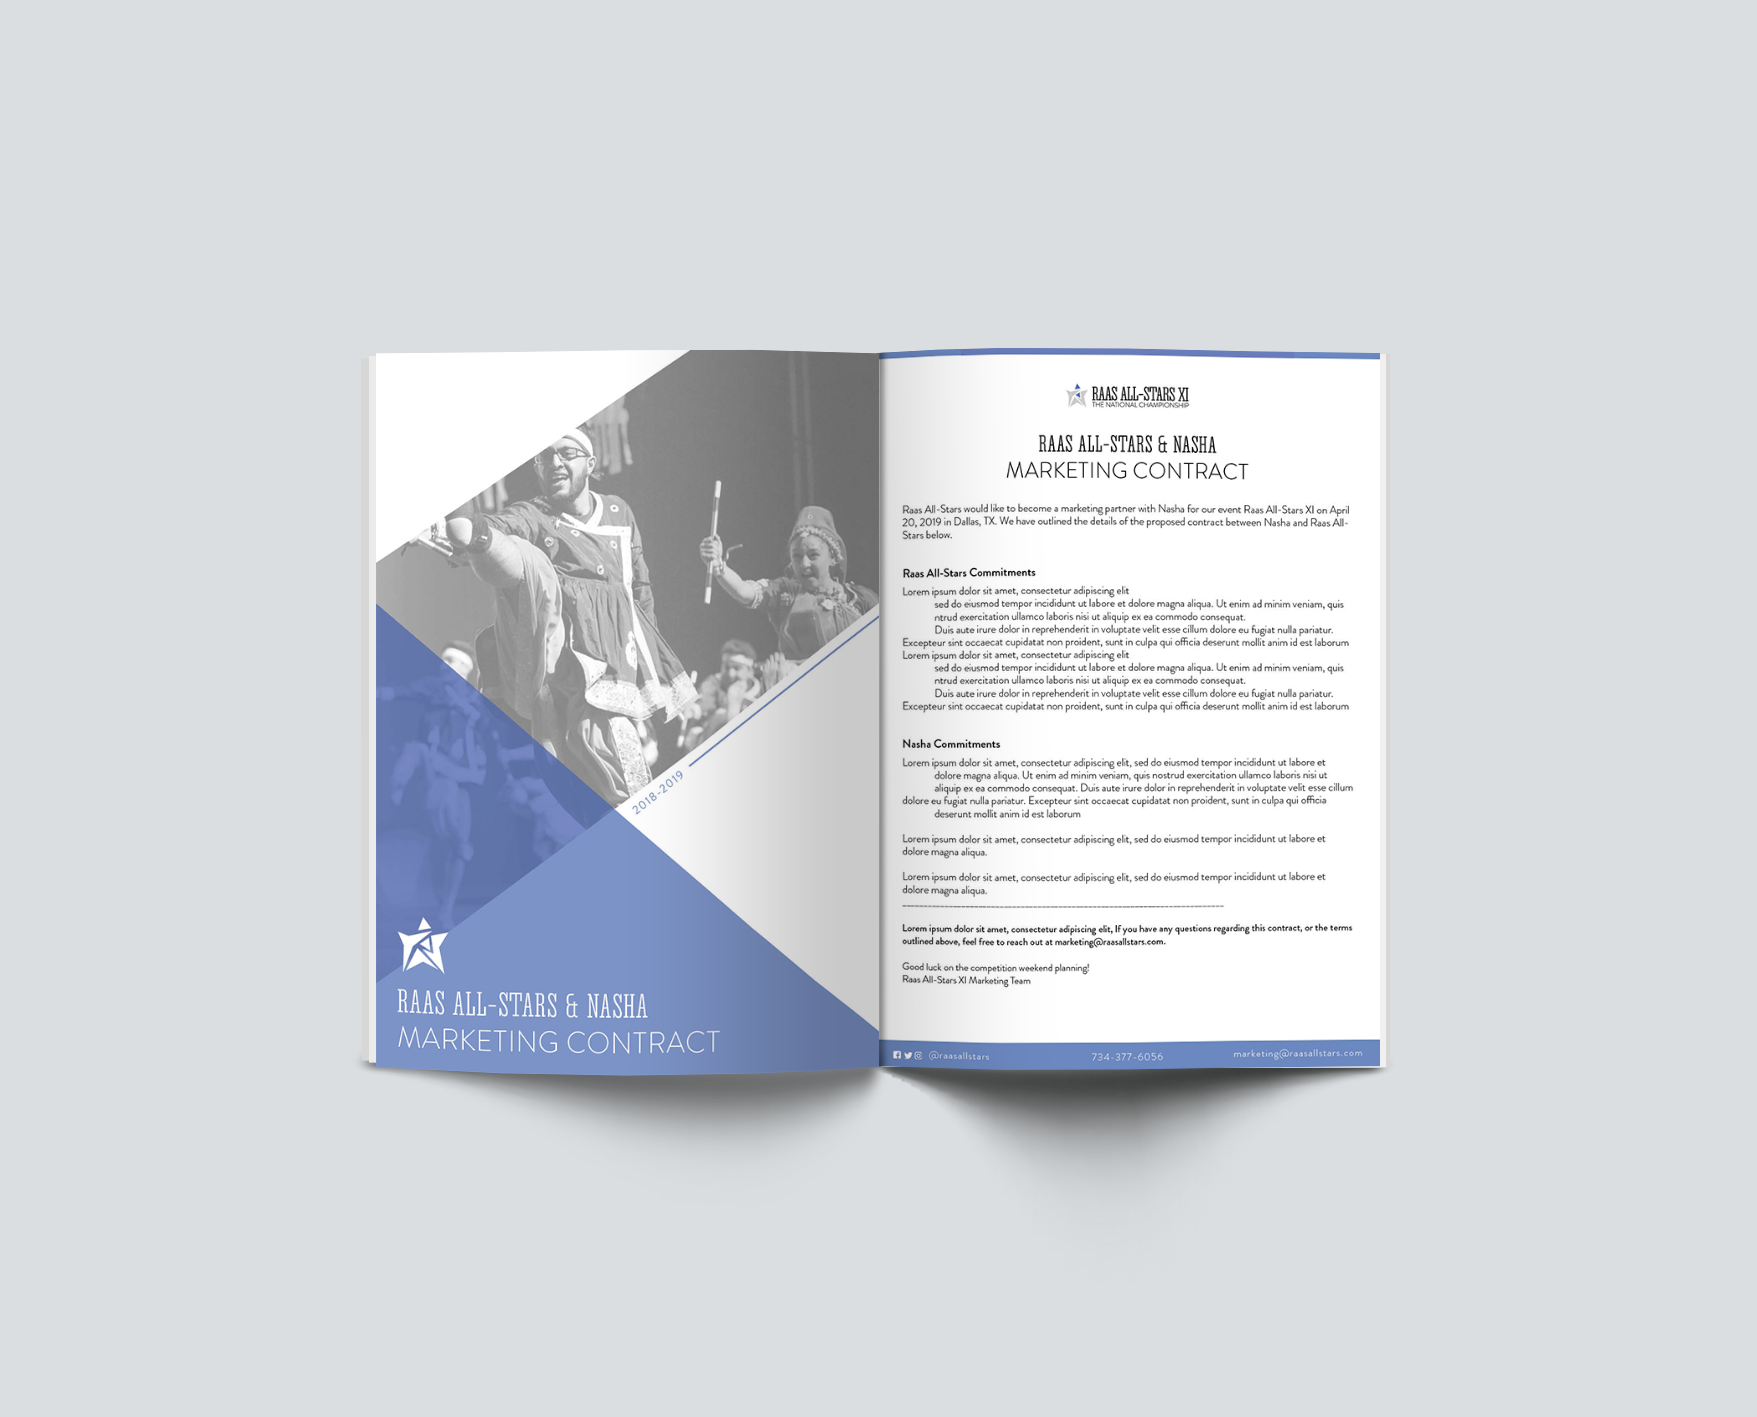 RAS-Marketing-Contract-Mockup-Latest.png